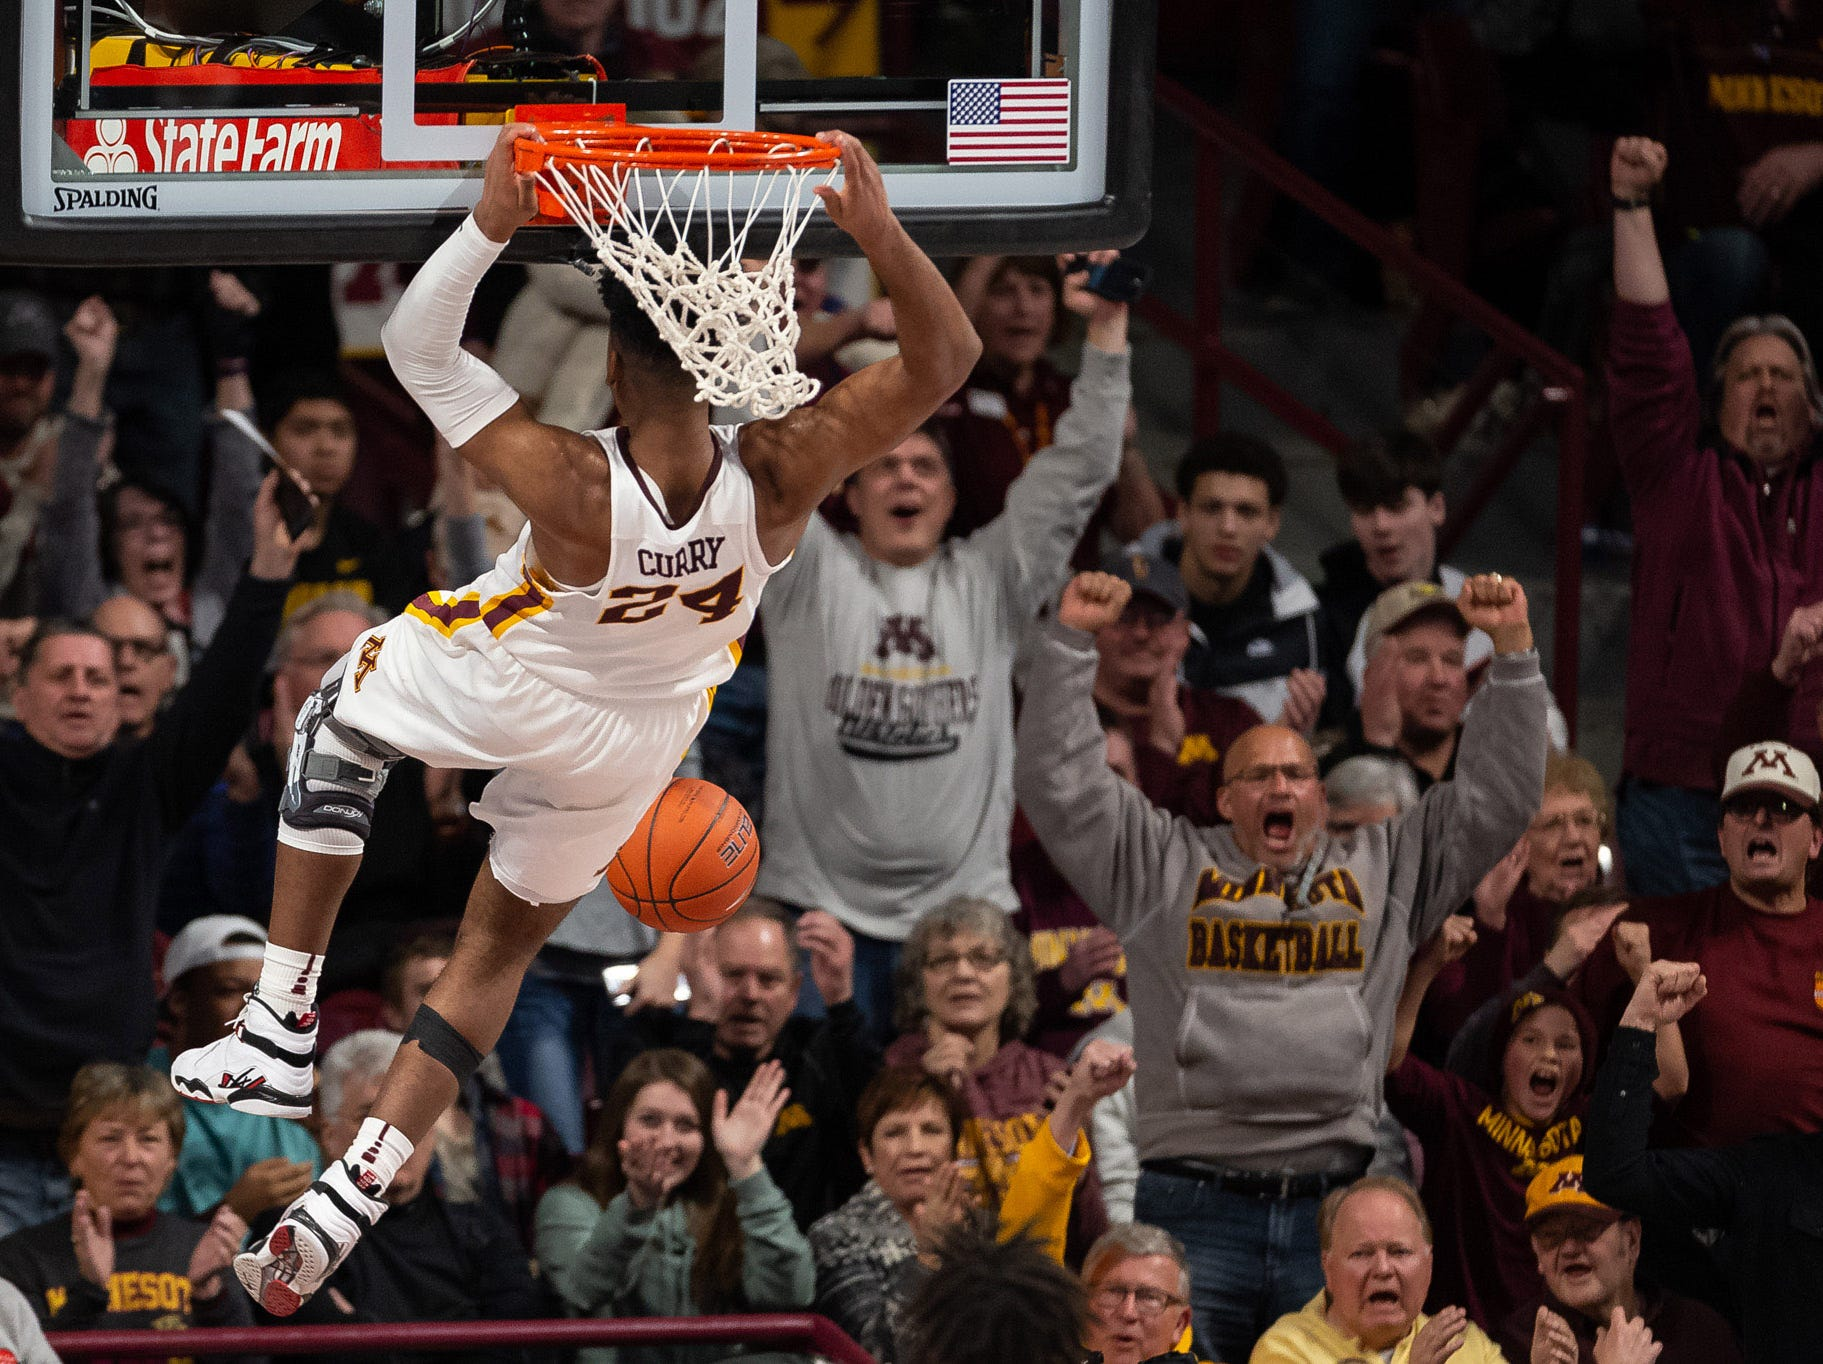 Jan. 27: Minnesota Golden Gophers forward Eric Curry (24) dunks the ball during the second half against the Iowa Hawkeyes at Williams Arena.